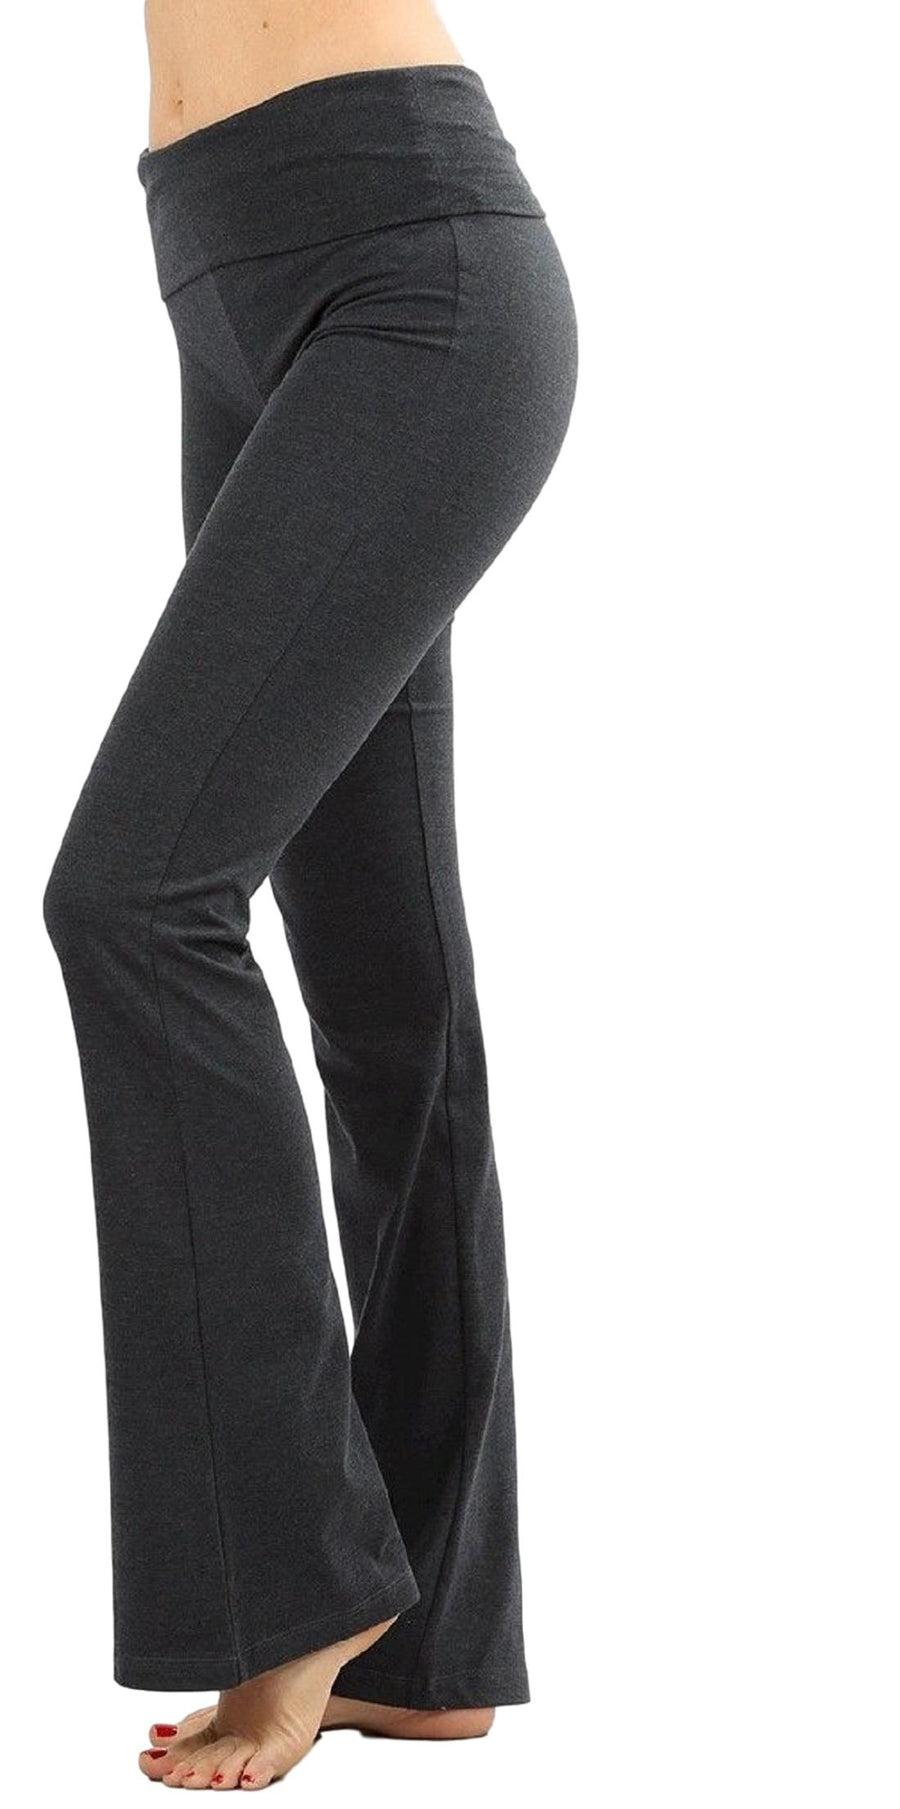 Zenana Women Fold Over Waist Cotton Stretch Flare Leg Boot Cut Yoga Pants Leggings Charcoal